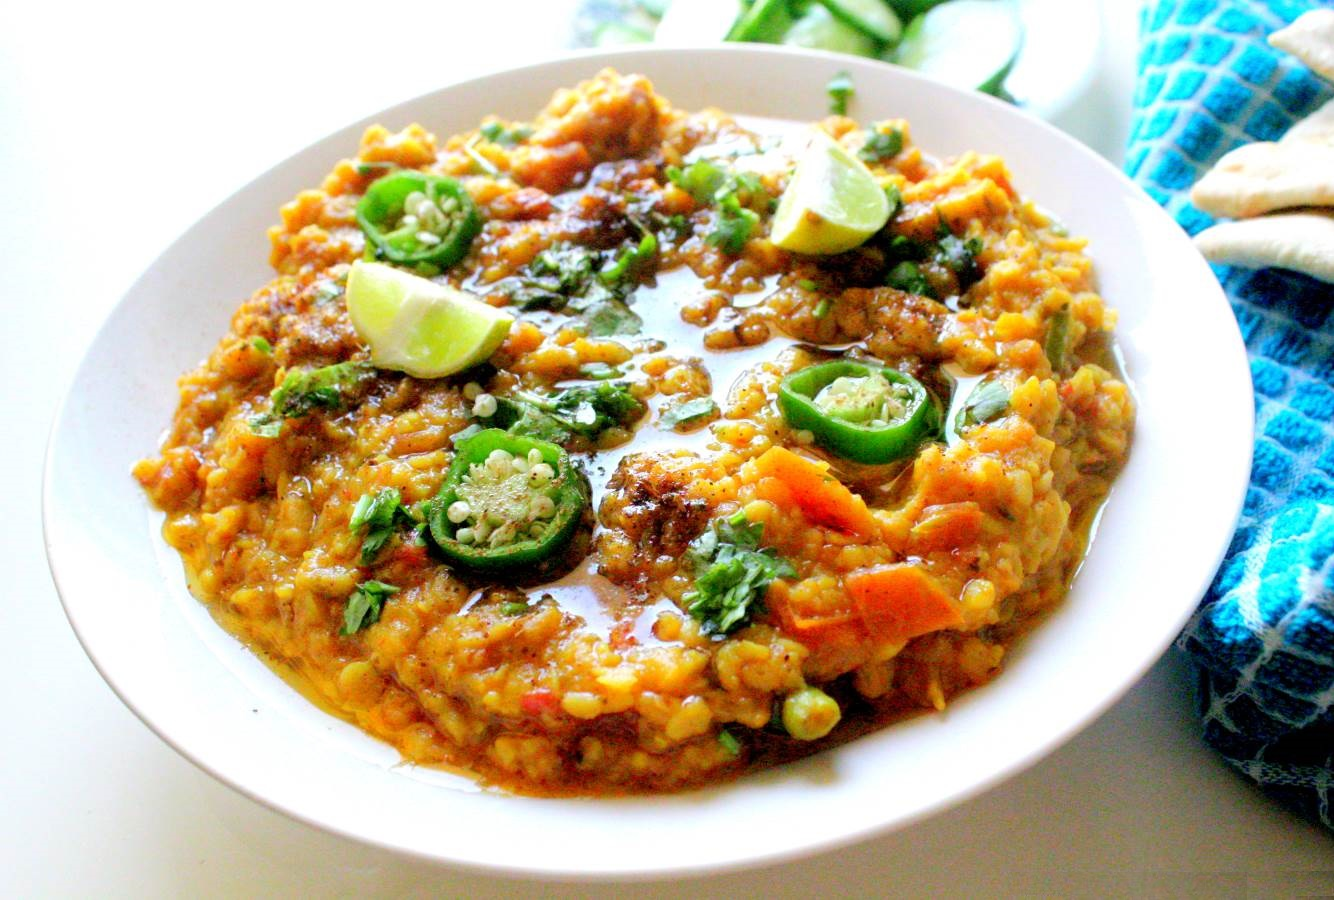 Masala moong masoor daal (yellow and red lentils)